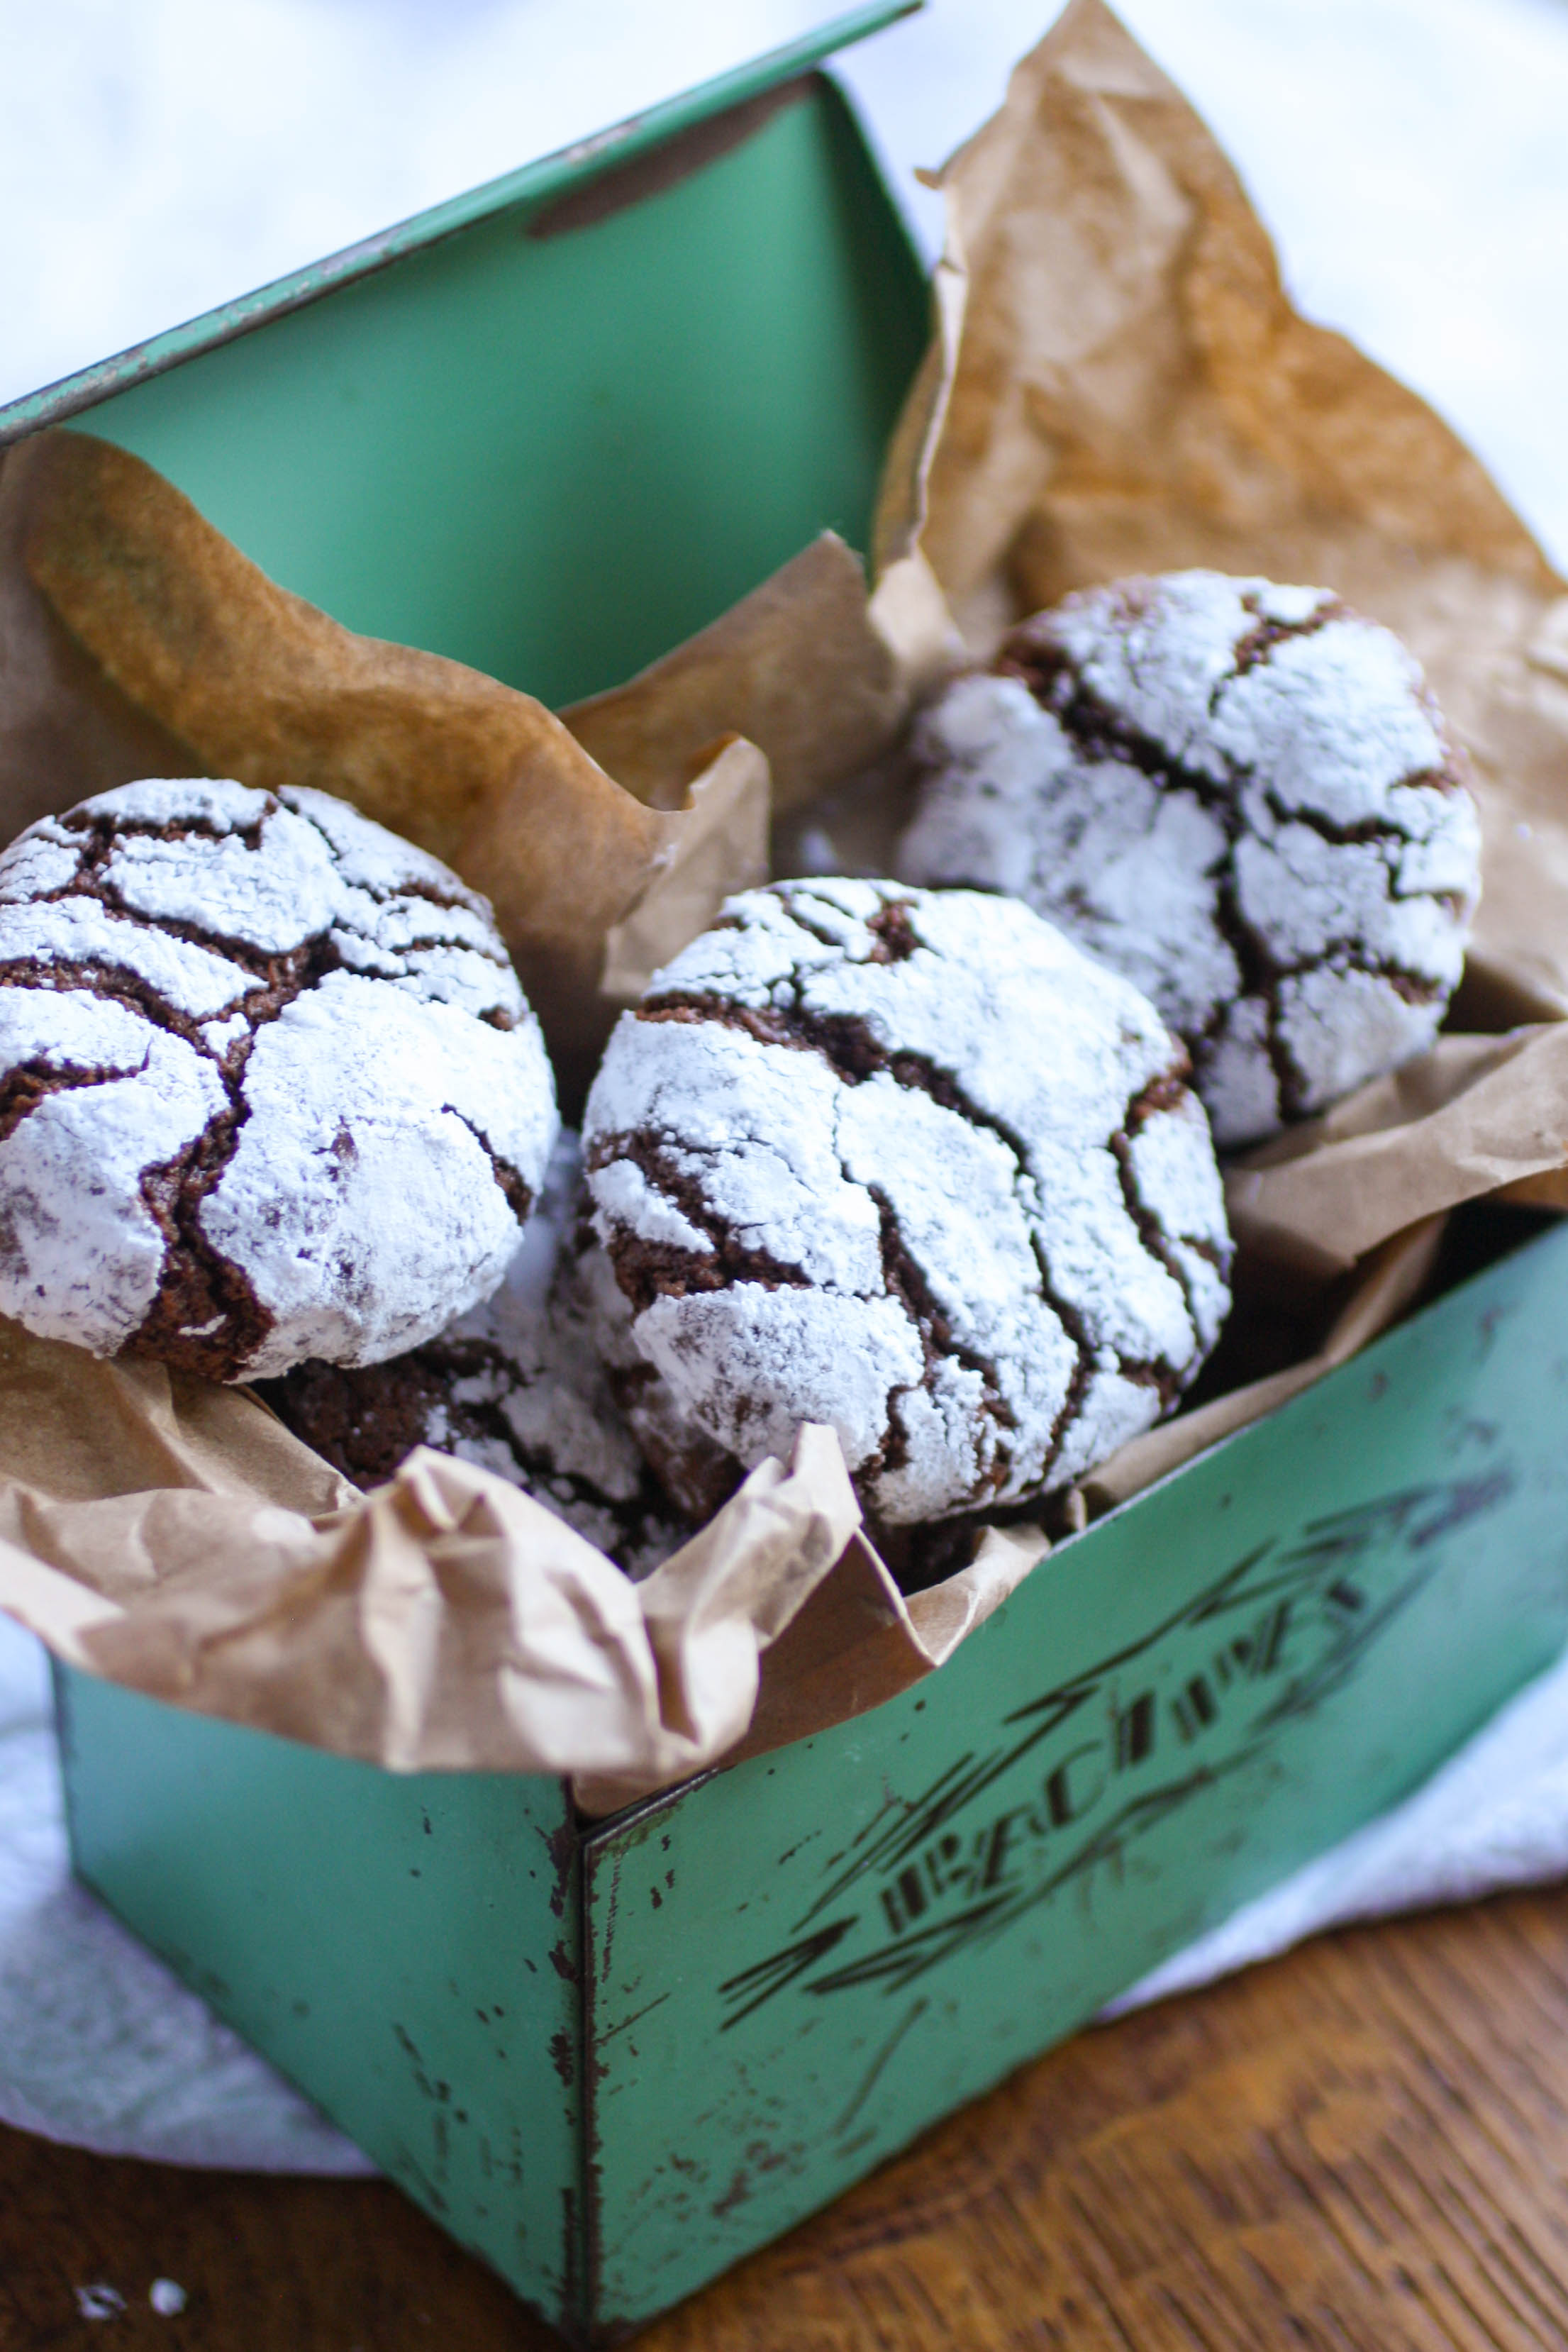 Chocolate-Chili Crinkle Cookies are a fun and rich treat. Serve these cookies anytime for a delightful treat!